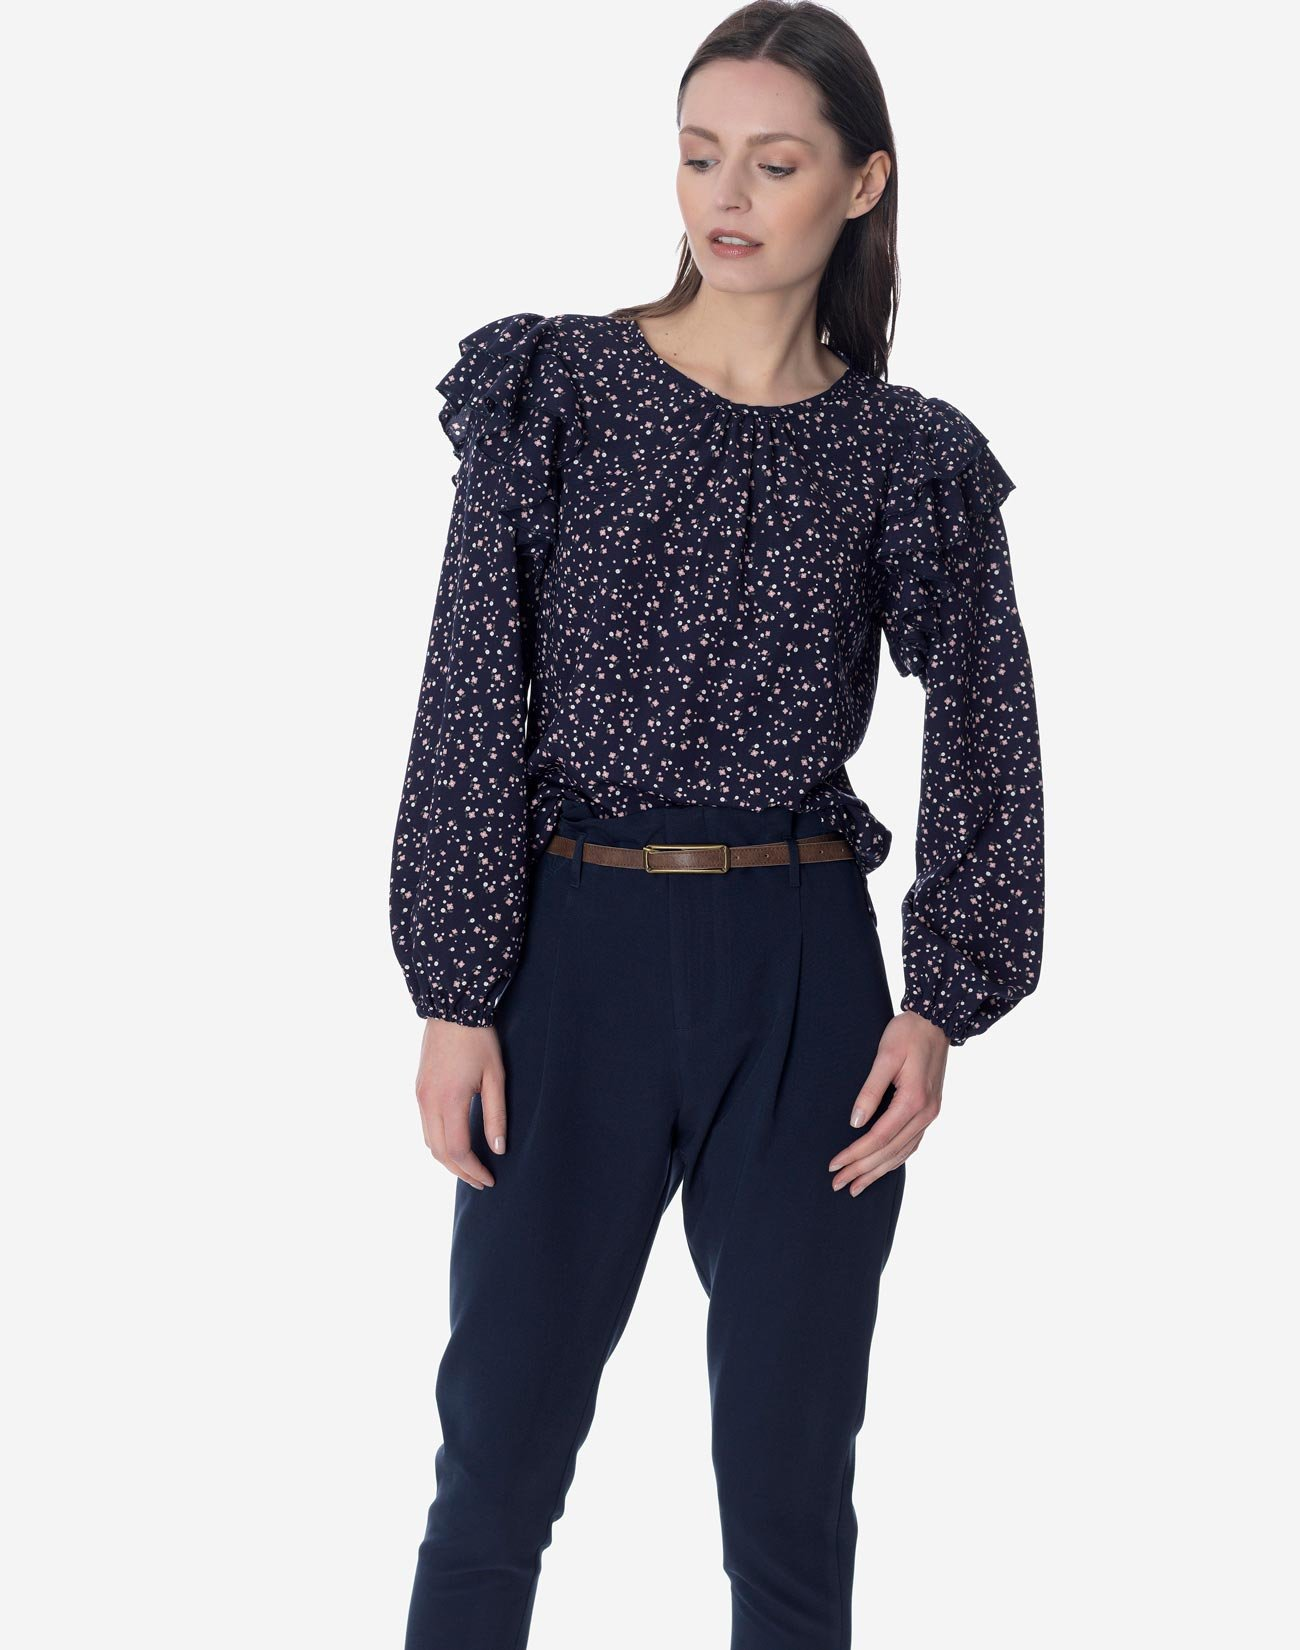 Printed top with double ruffles